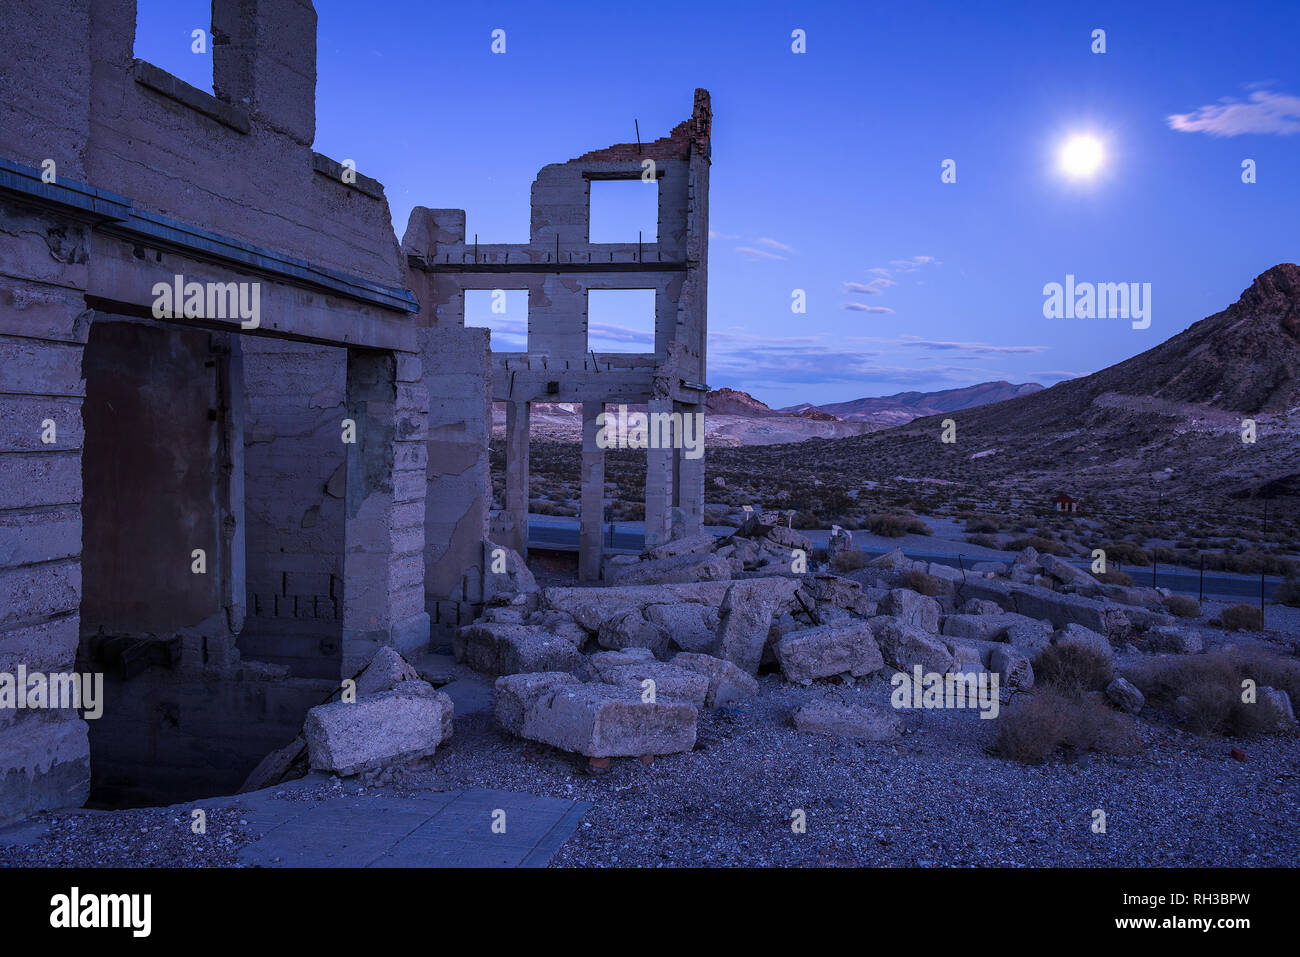 Abandoned building in Rhyolite, Nevada at night with full moon - Stock Image